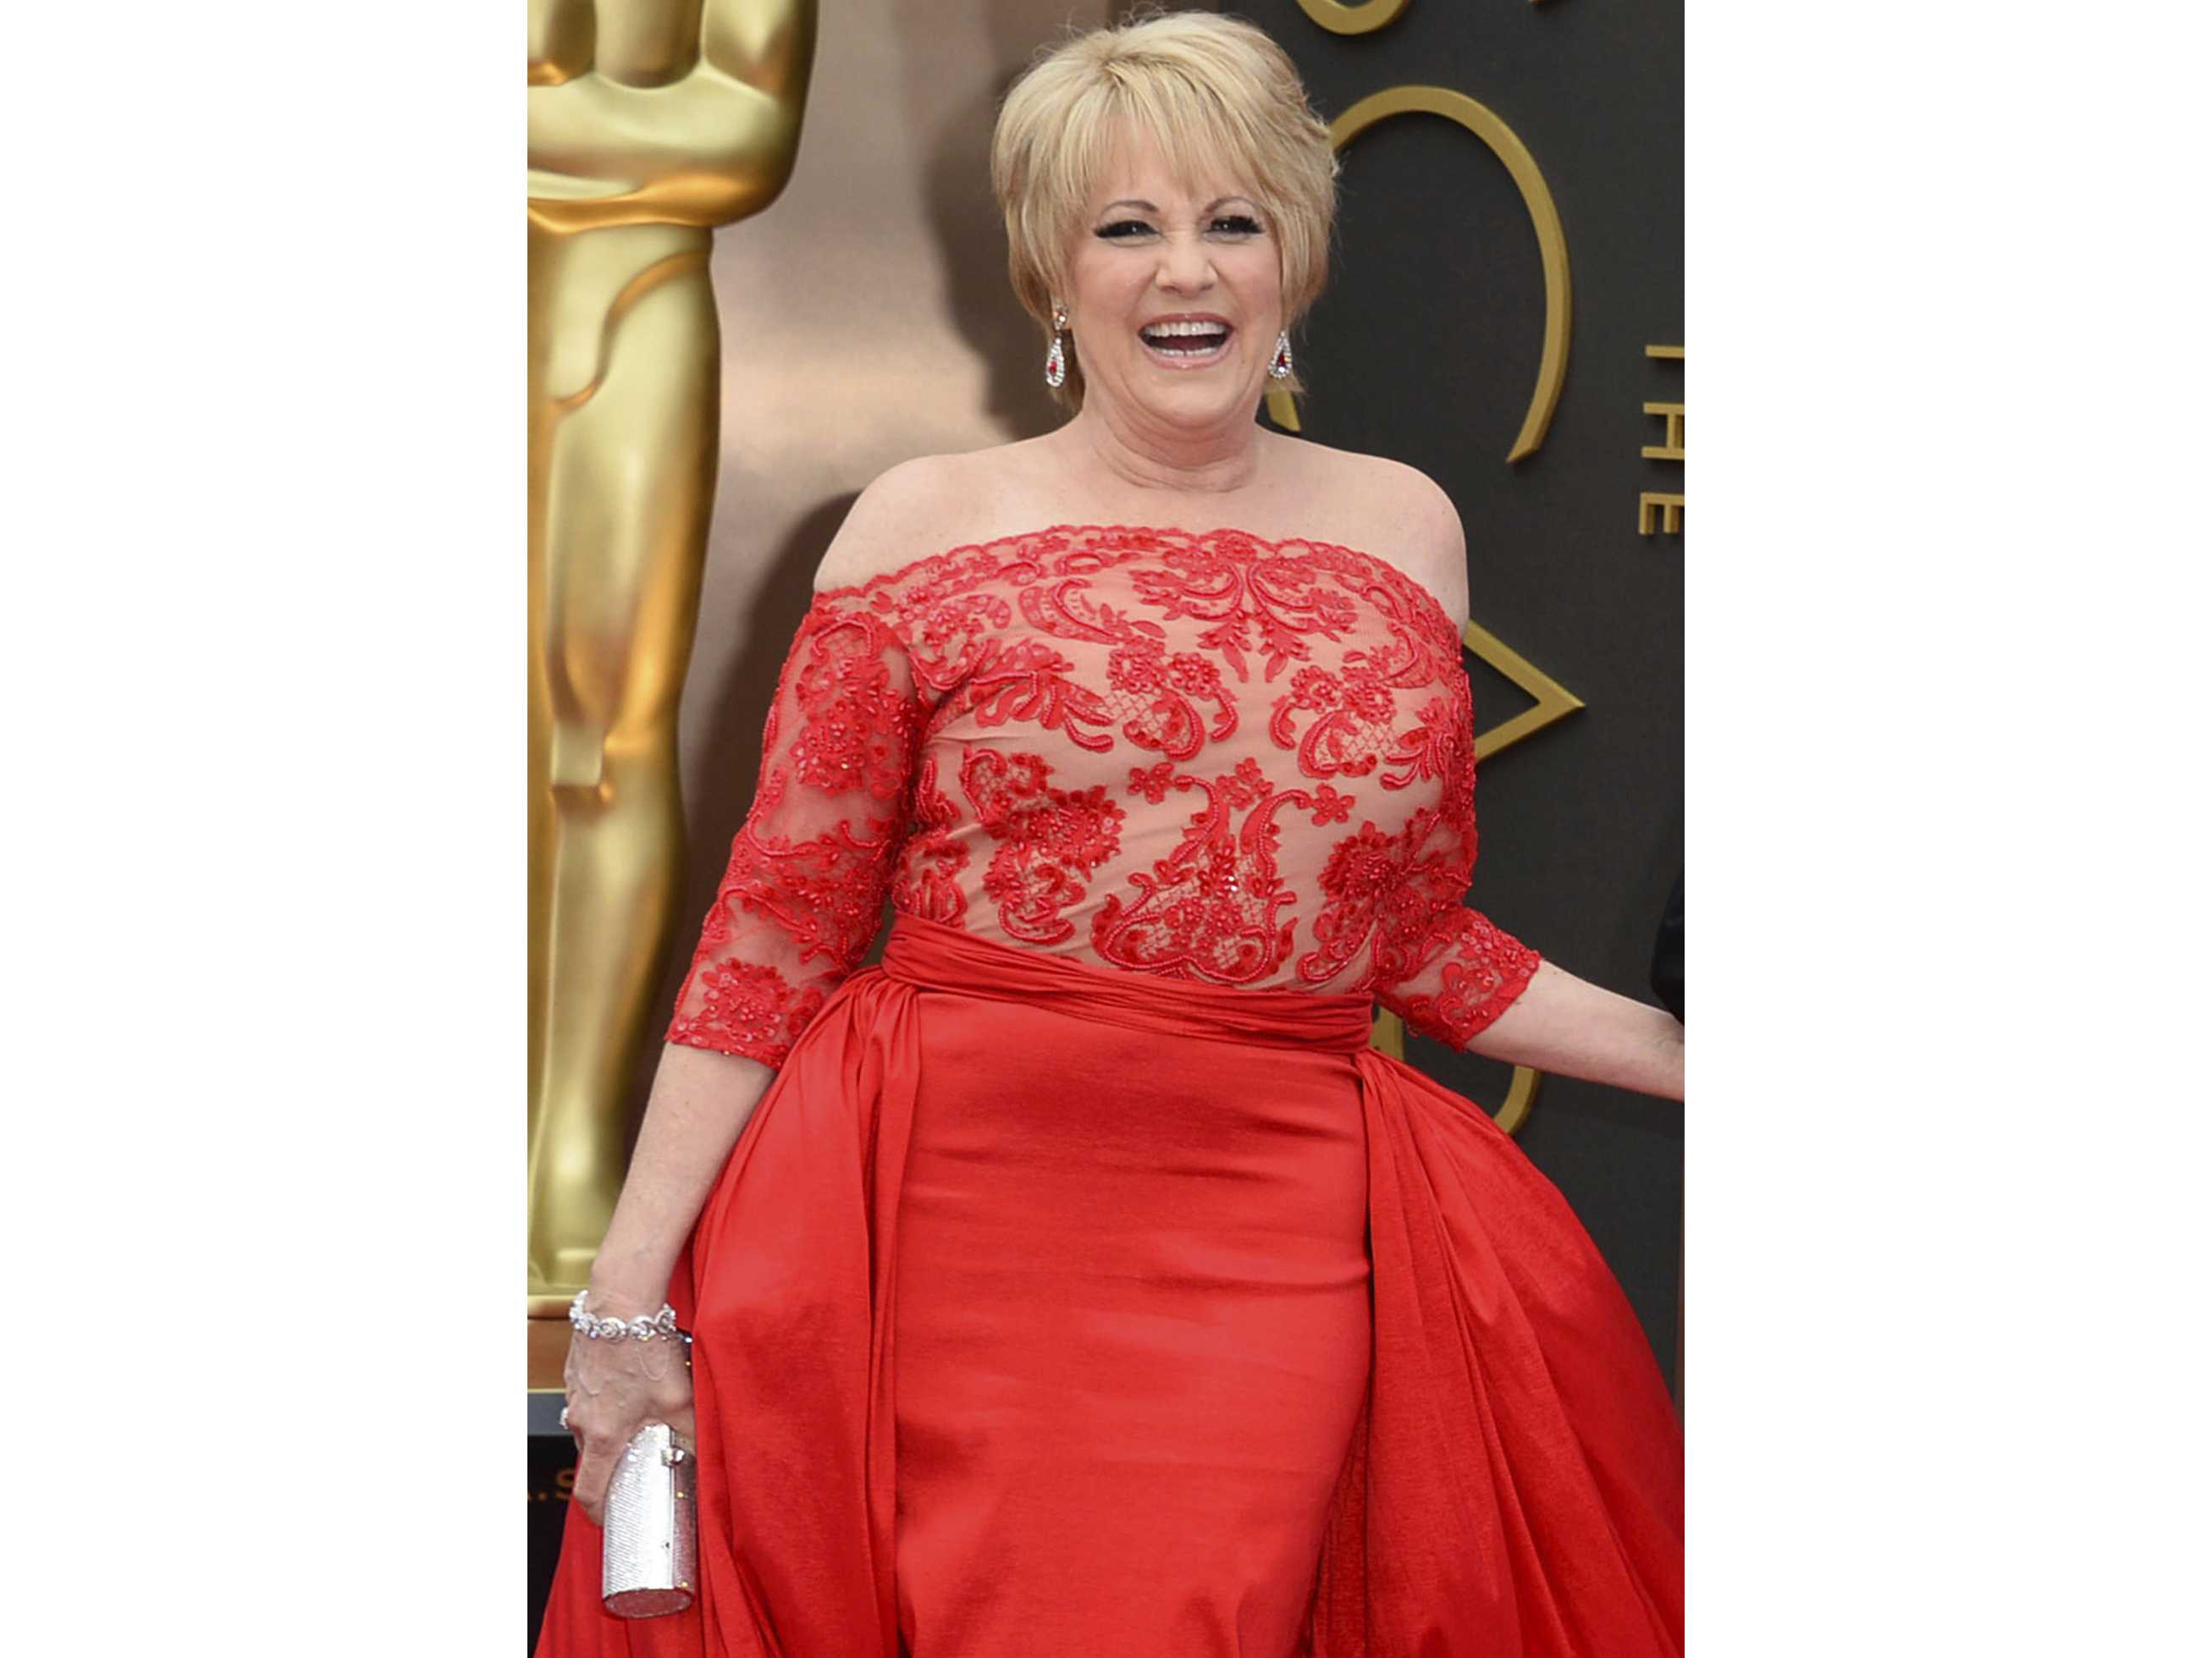 Rep: Lorna Luft has Successful Brain Surgery for Tumor